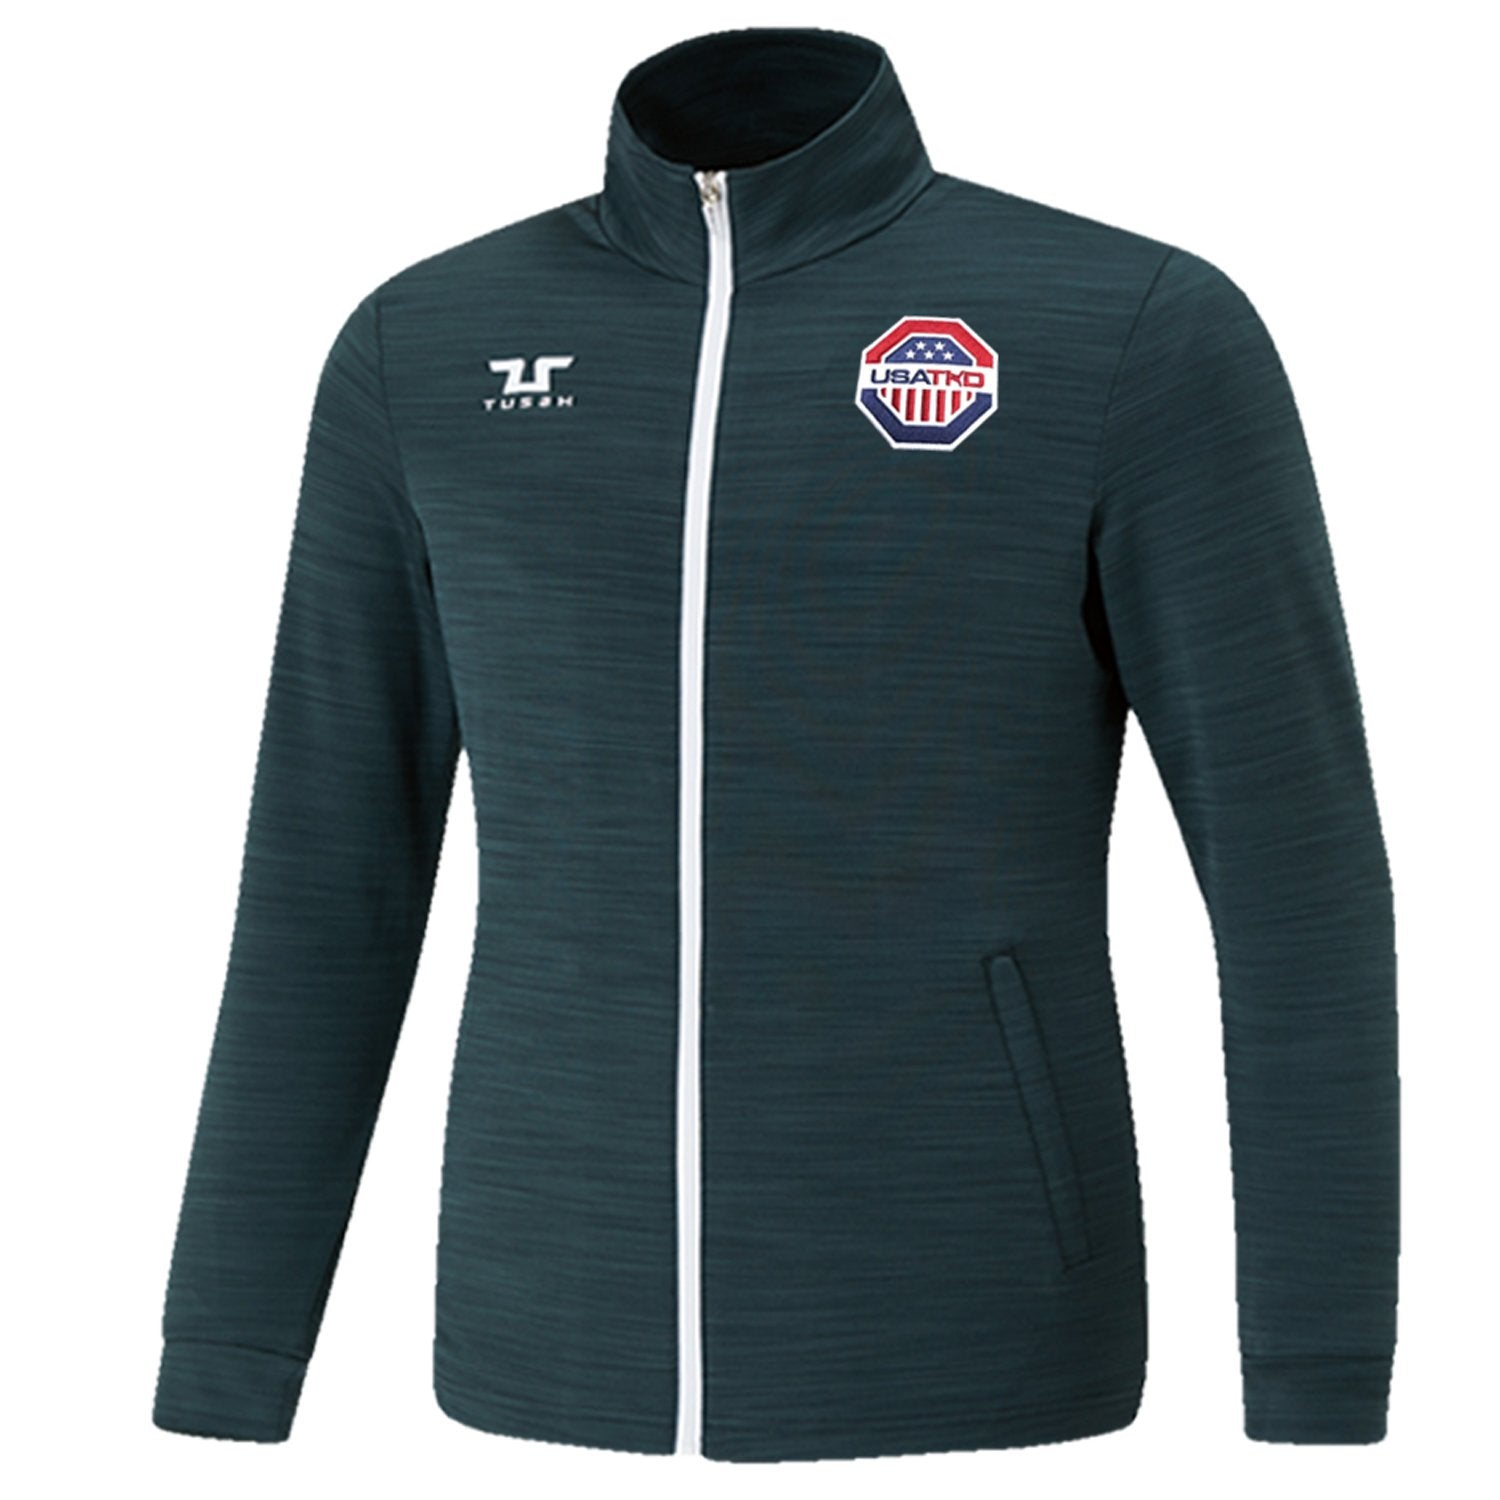 Tusah Advanced Tracksuit - Top